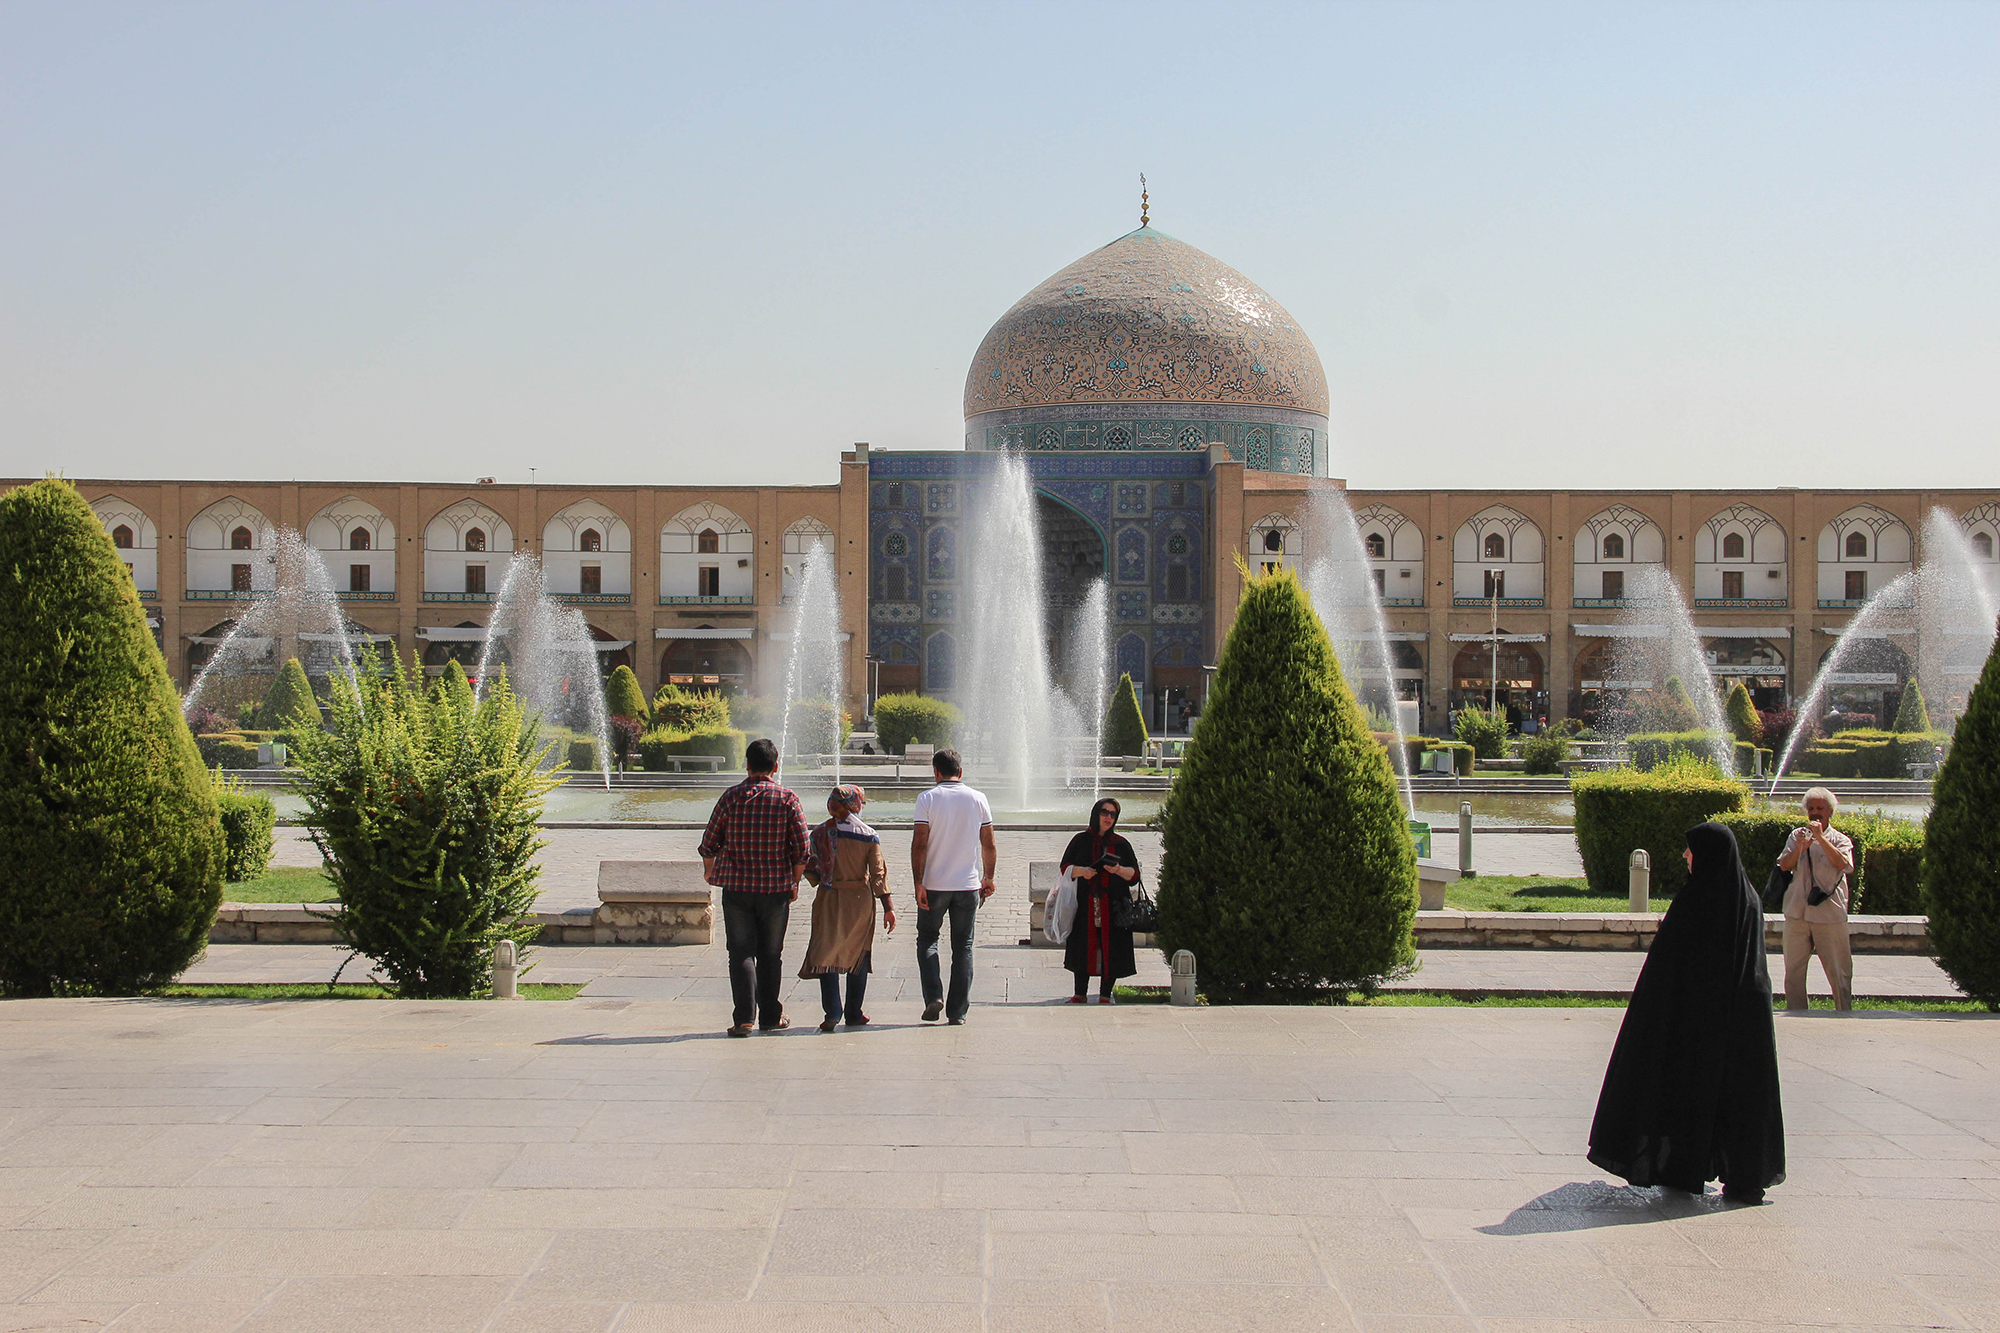 As Iran's third largest city, Isfahan has loads on offer. Photo courtesy Becki Enright.